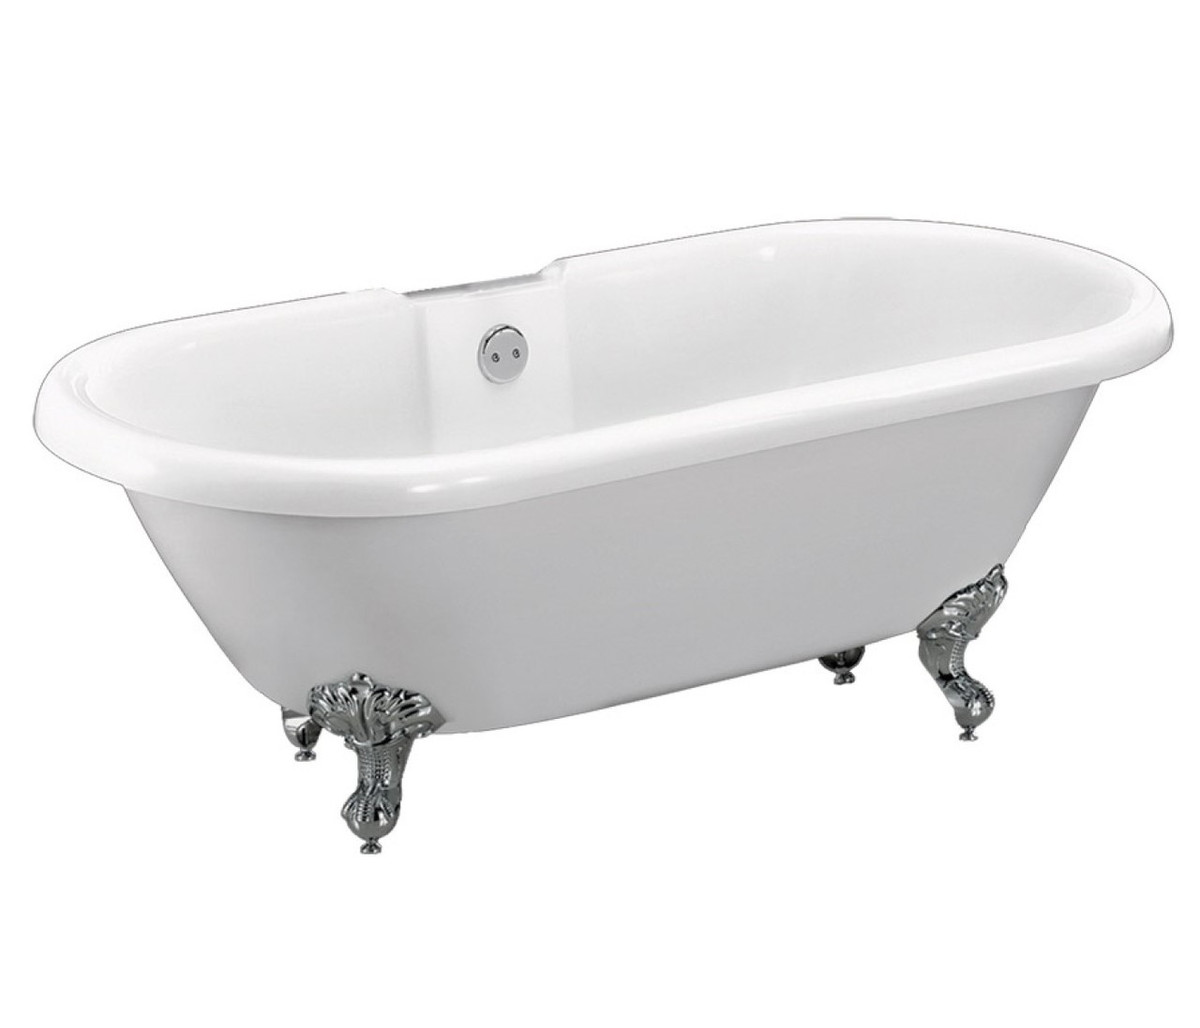 Dual Traditional Rolltop Freestanding Bath including Chrome Feet  order online @ www.tuscanytiles.co.uk